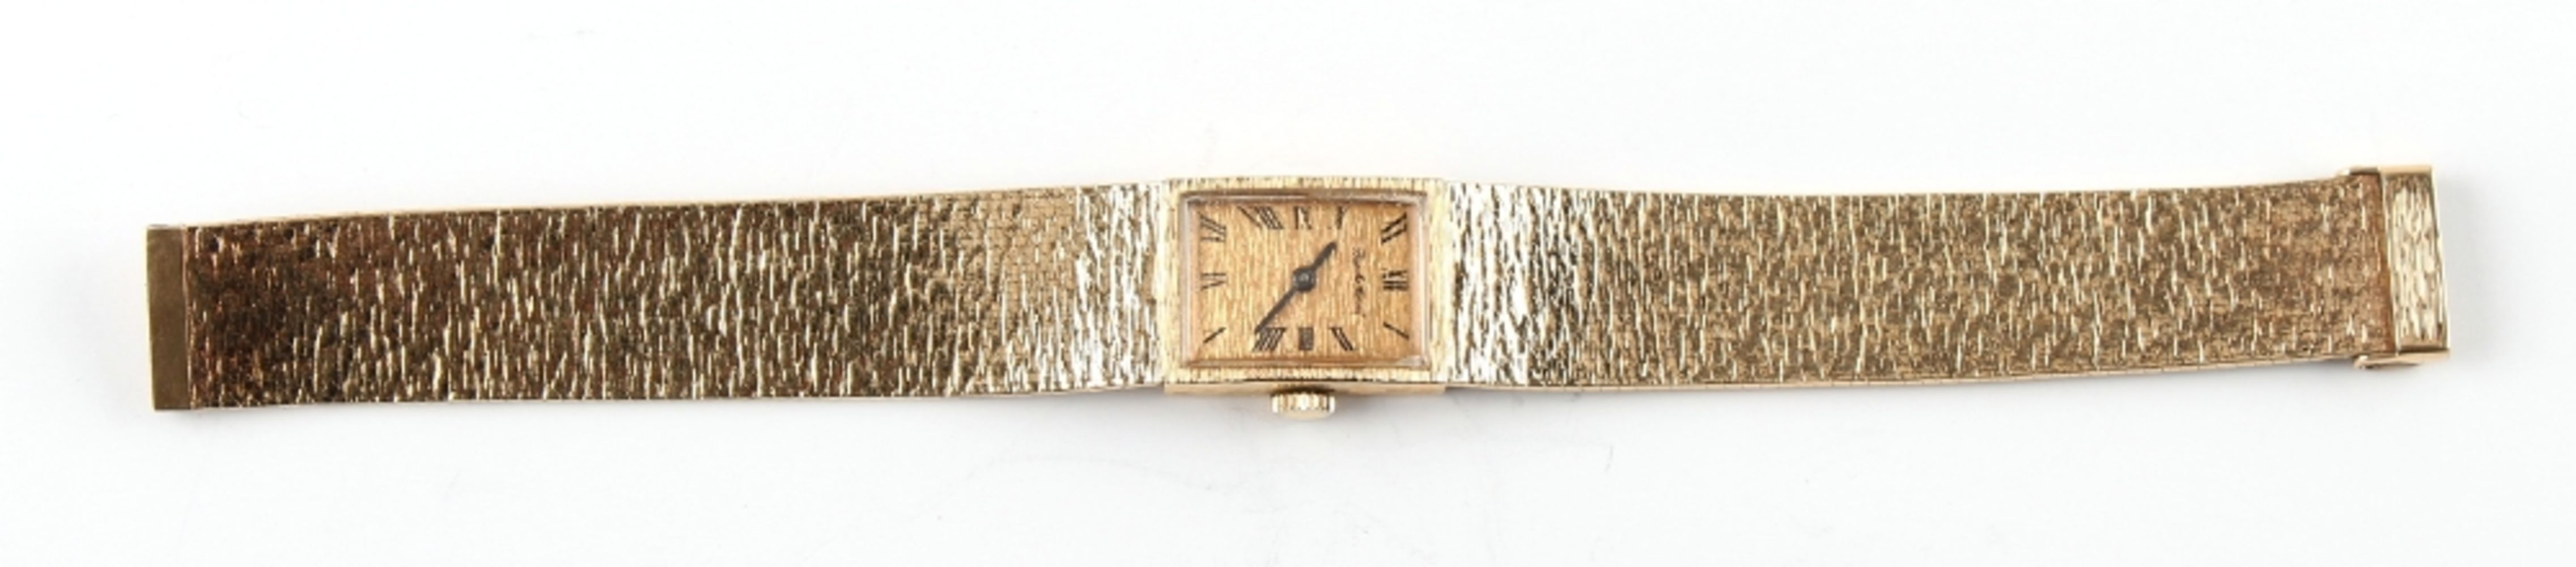 Watches; Coins & Objets de Vertu; Silver & Silver Plated Items; Militaria & Sporting Related Items; and Antique Furniture & Objects